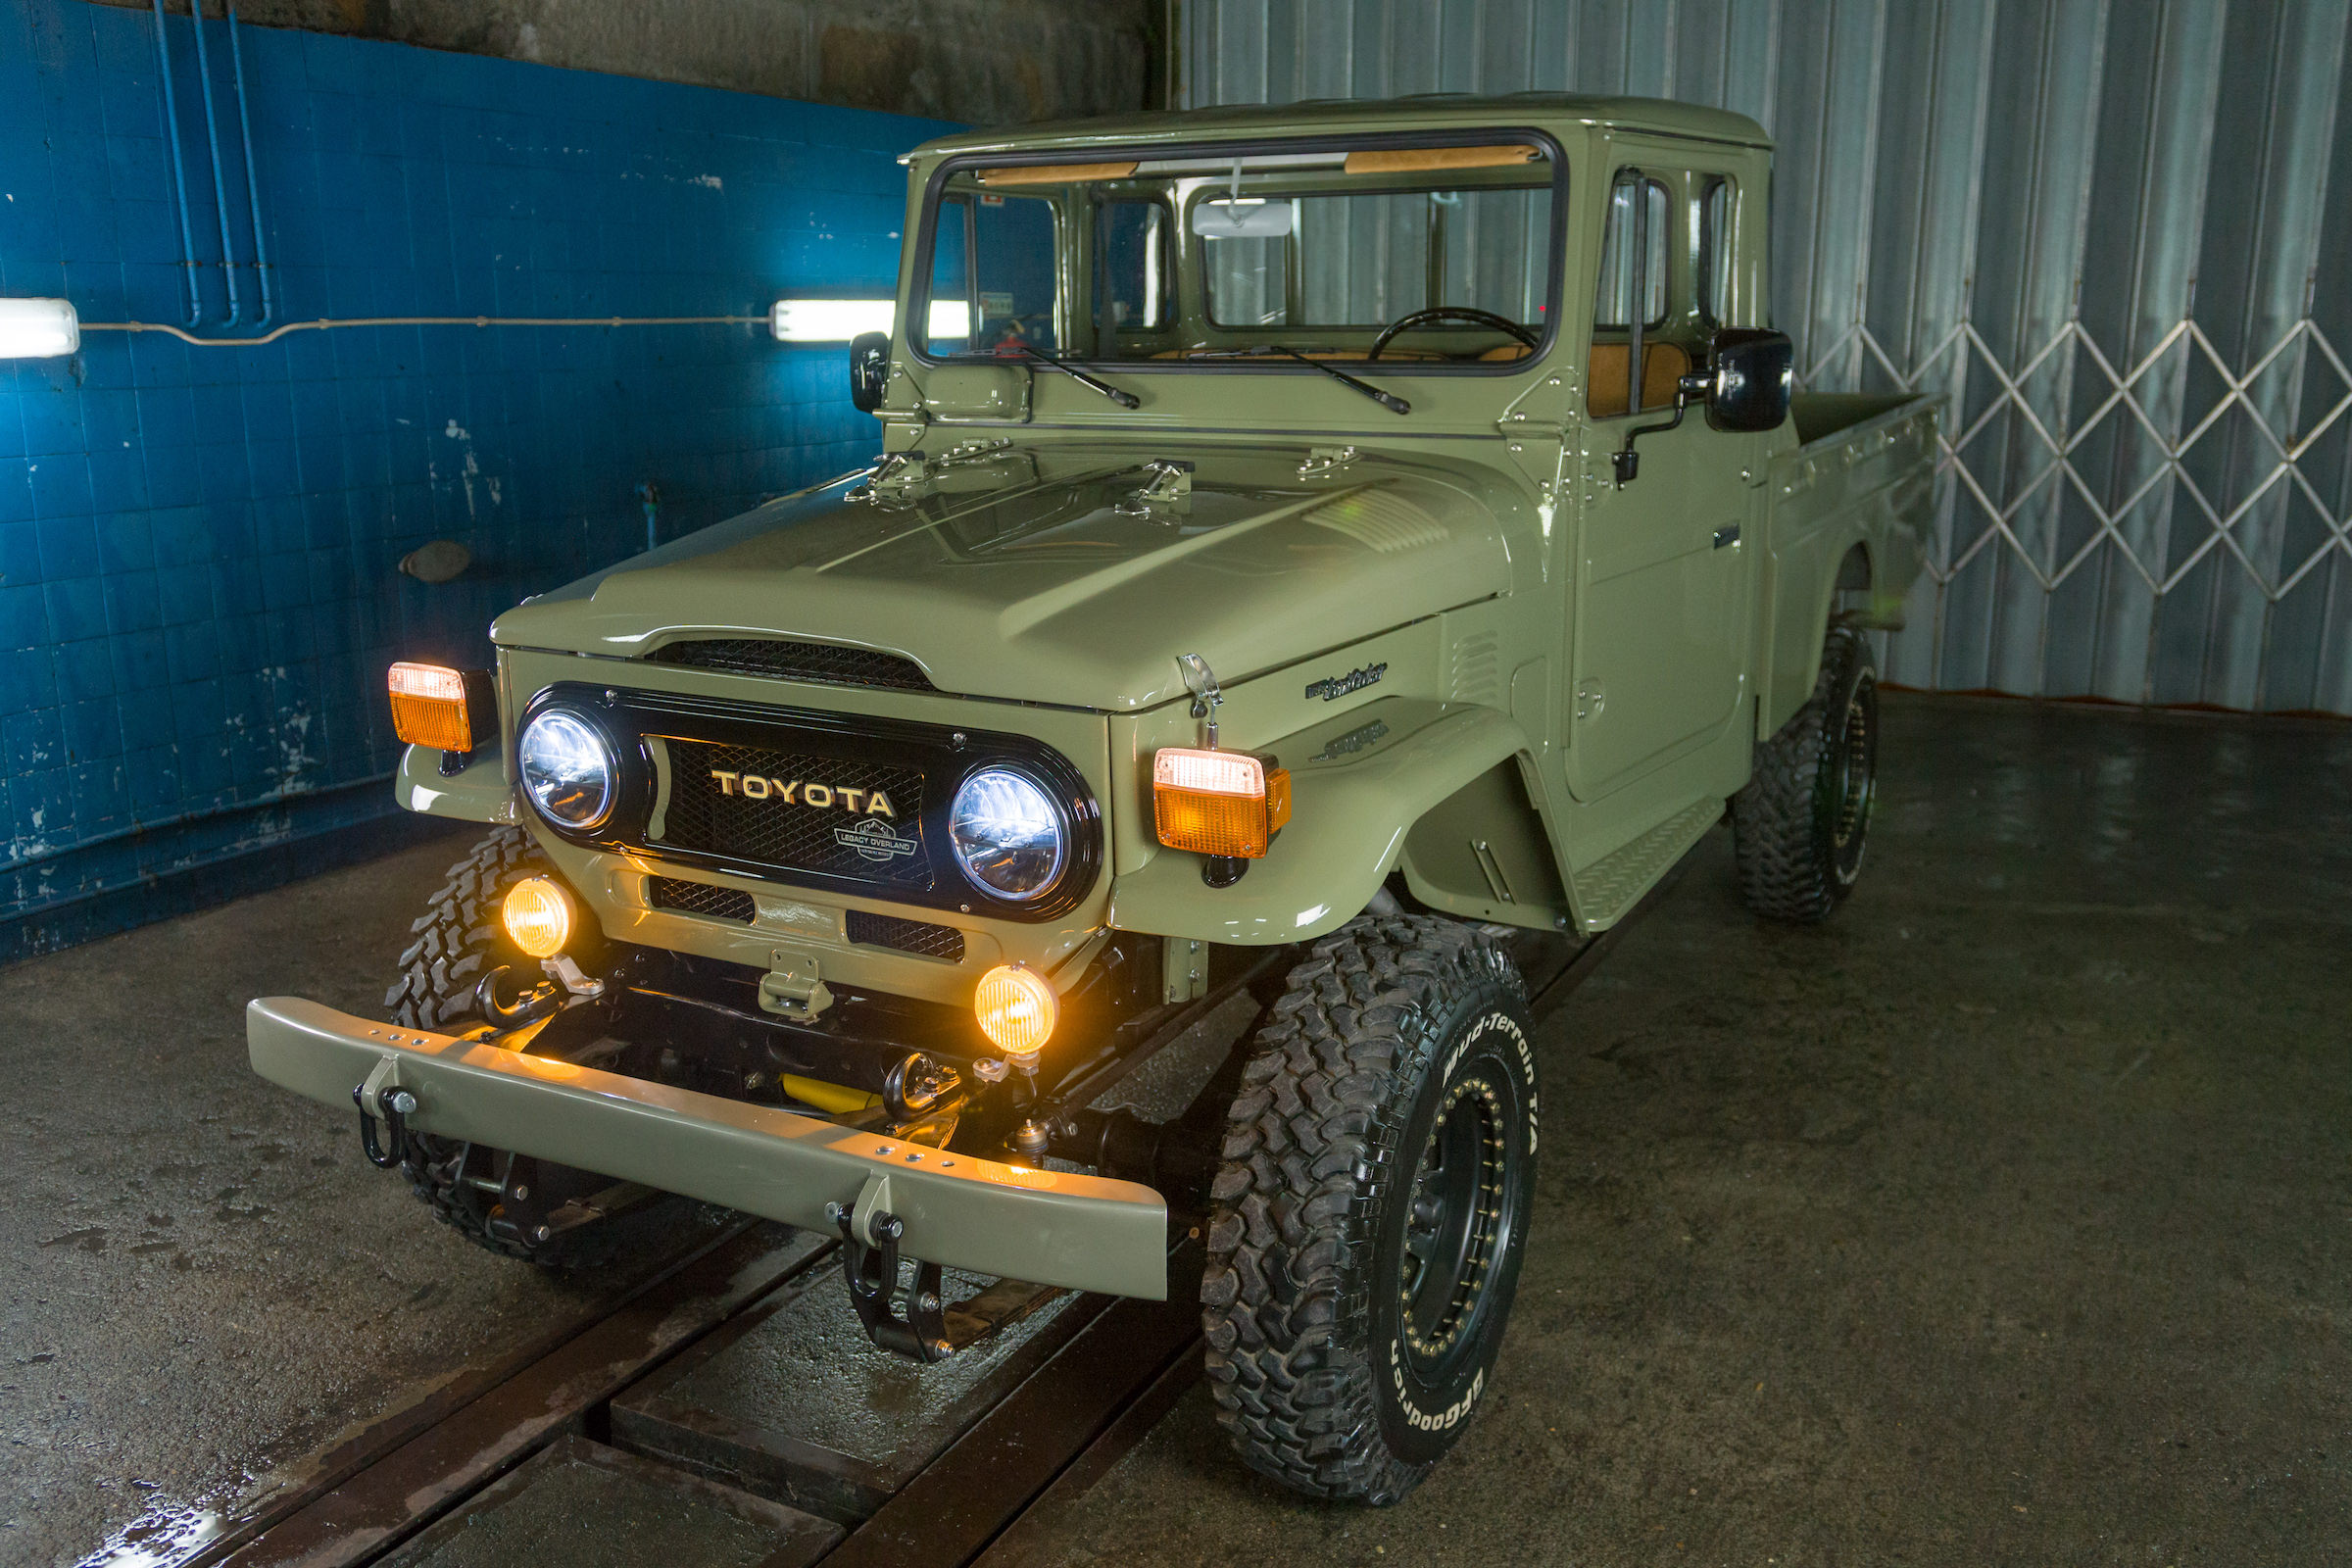 Toyota Hj 45 >> 1978 Toyota Land Cruiser HJ45 Long Bed Pick-Up Truck